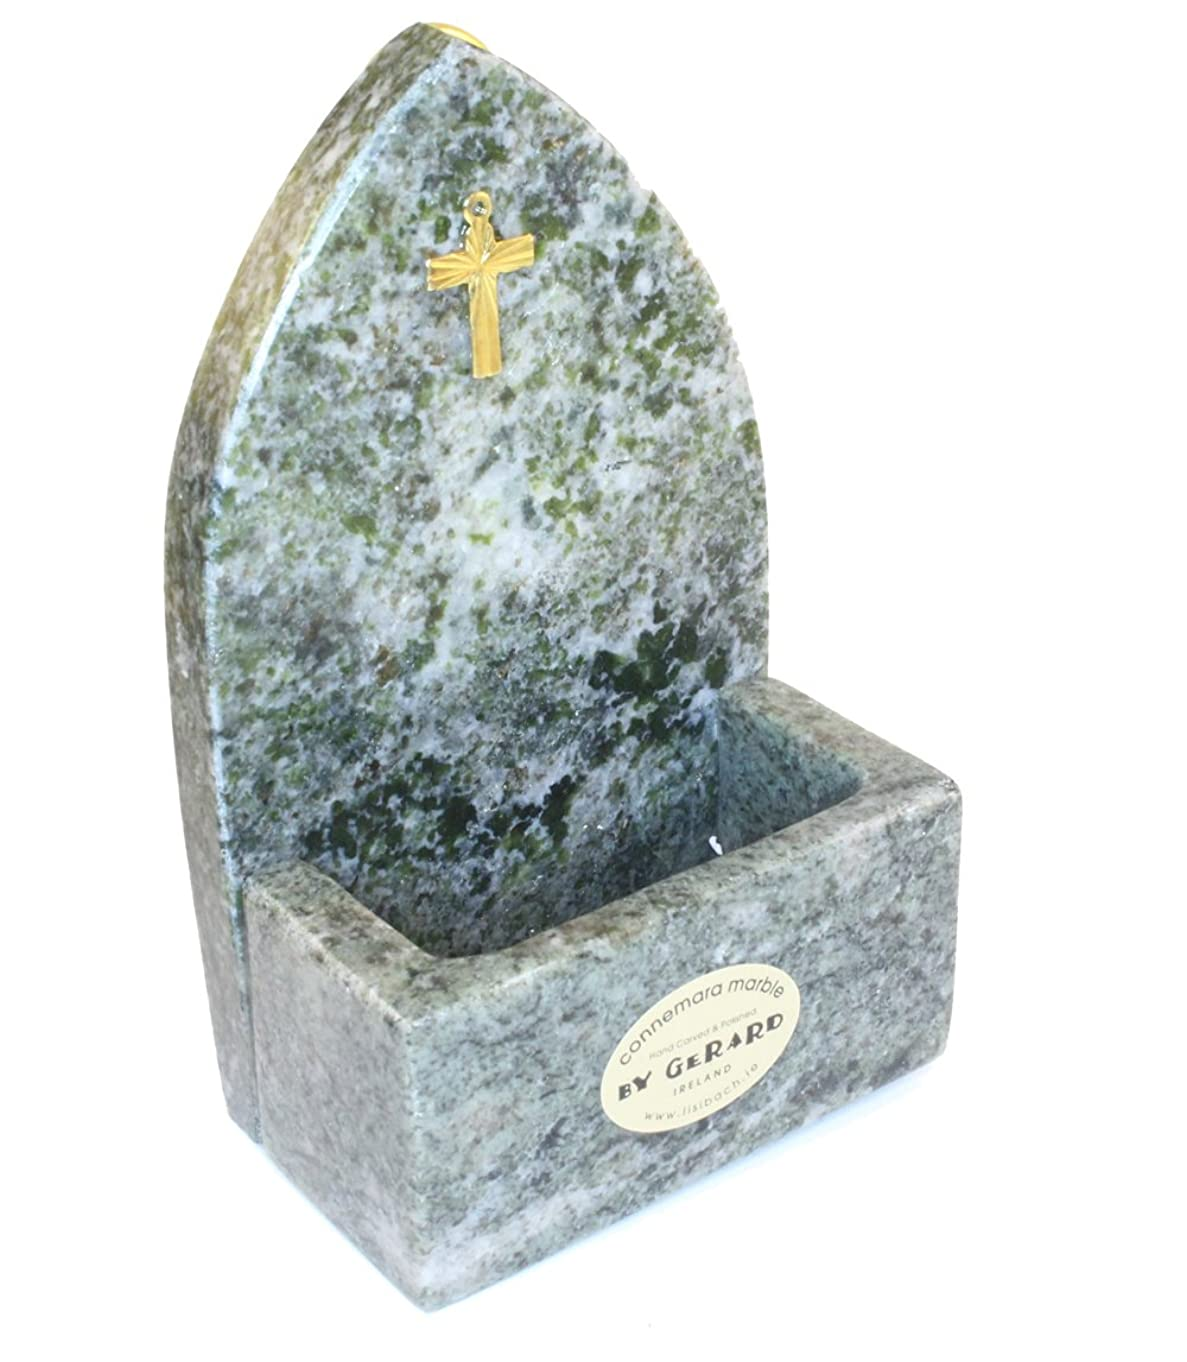 Holy Water Font Connemara Marble Gerard x63762066